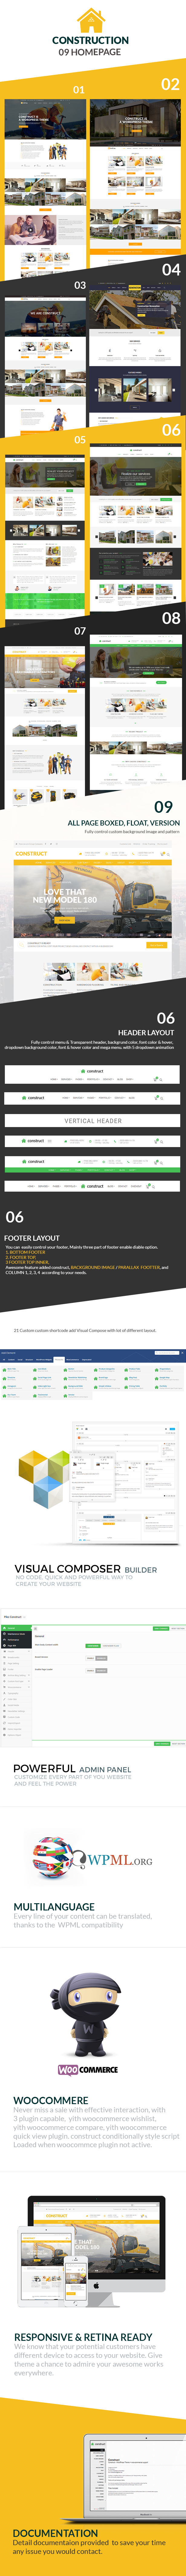 Construct - Construction WordPress Theme - 2 construct - construction wordpress theme nulled free download Construct – Construction WordPress Theme Nulled Free Download construct 13